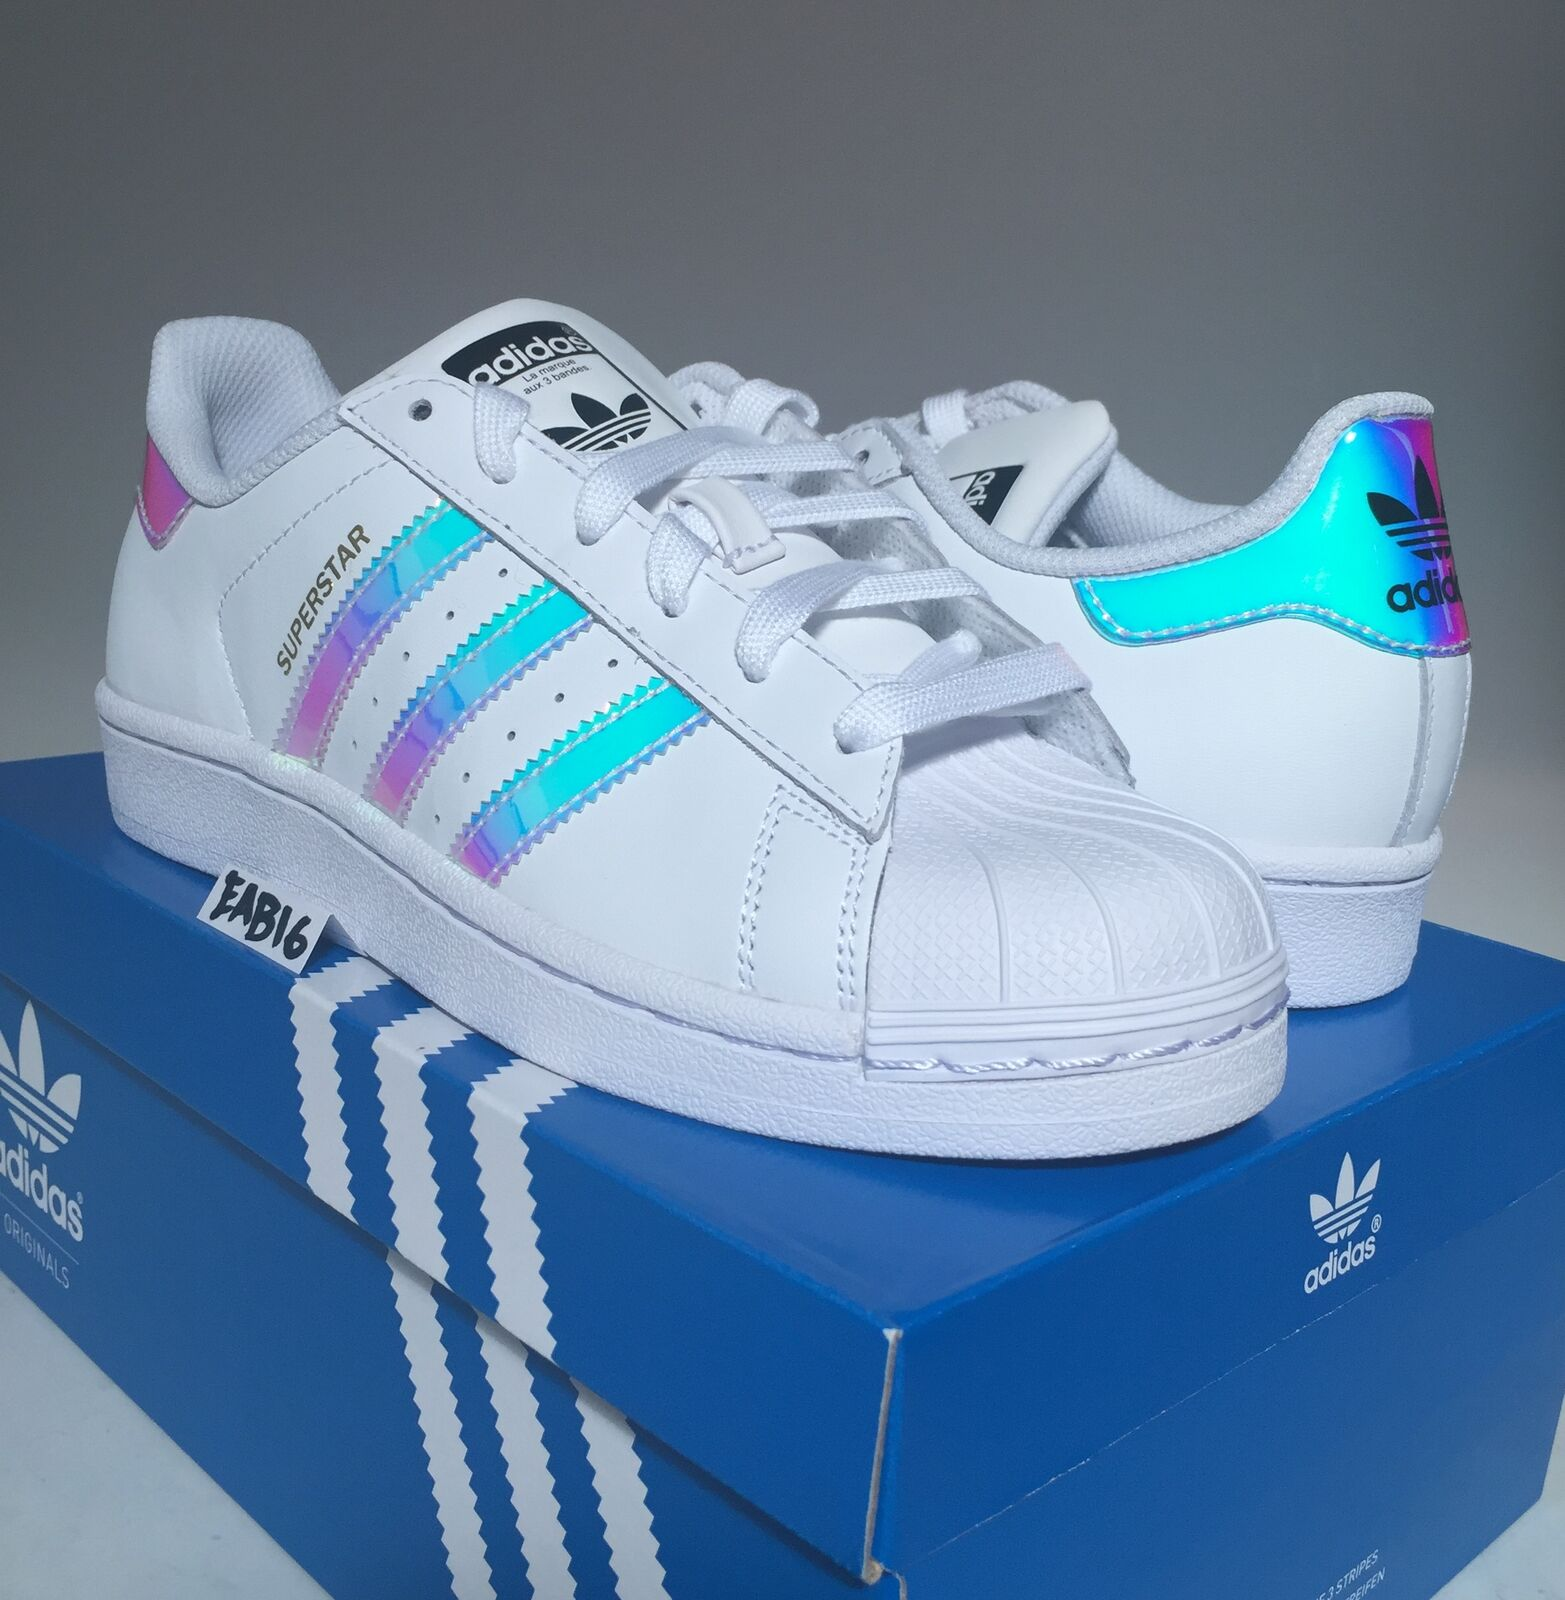 cheap for discount 89ae8 7d0b6 Adidas superstar shell j junior iridescente ologramma gs aq6278 f shell  superstar tep db0e14